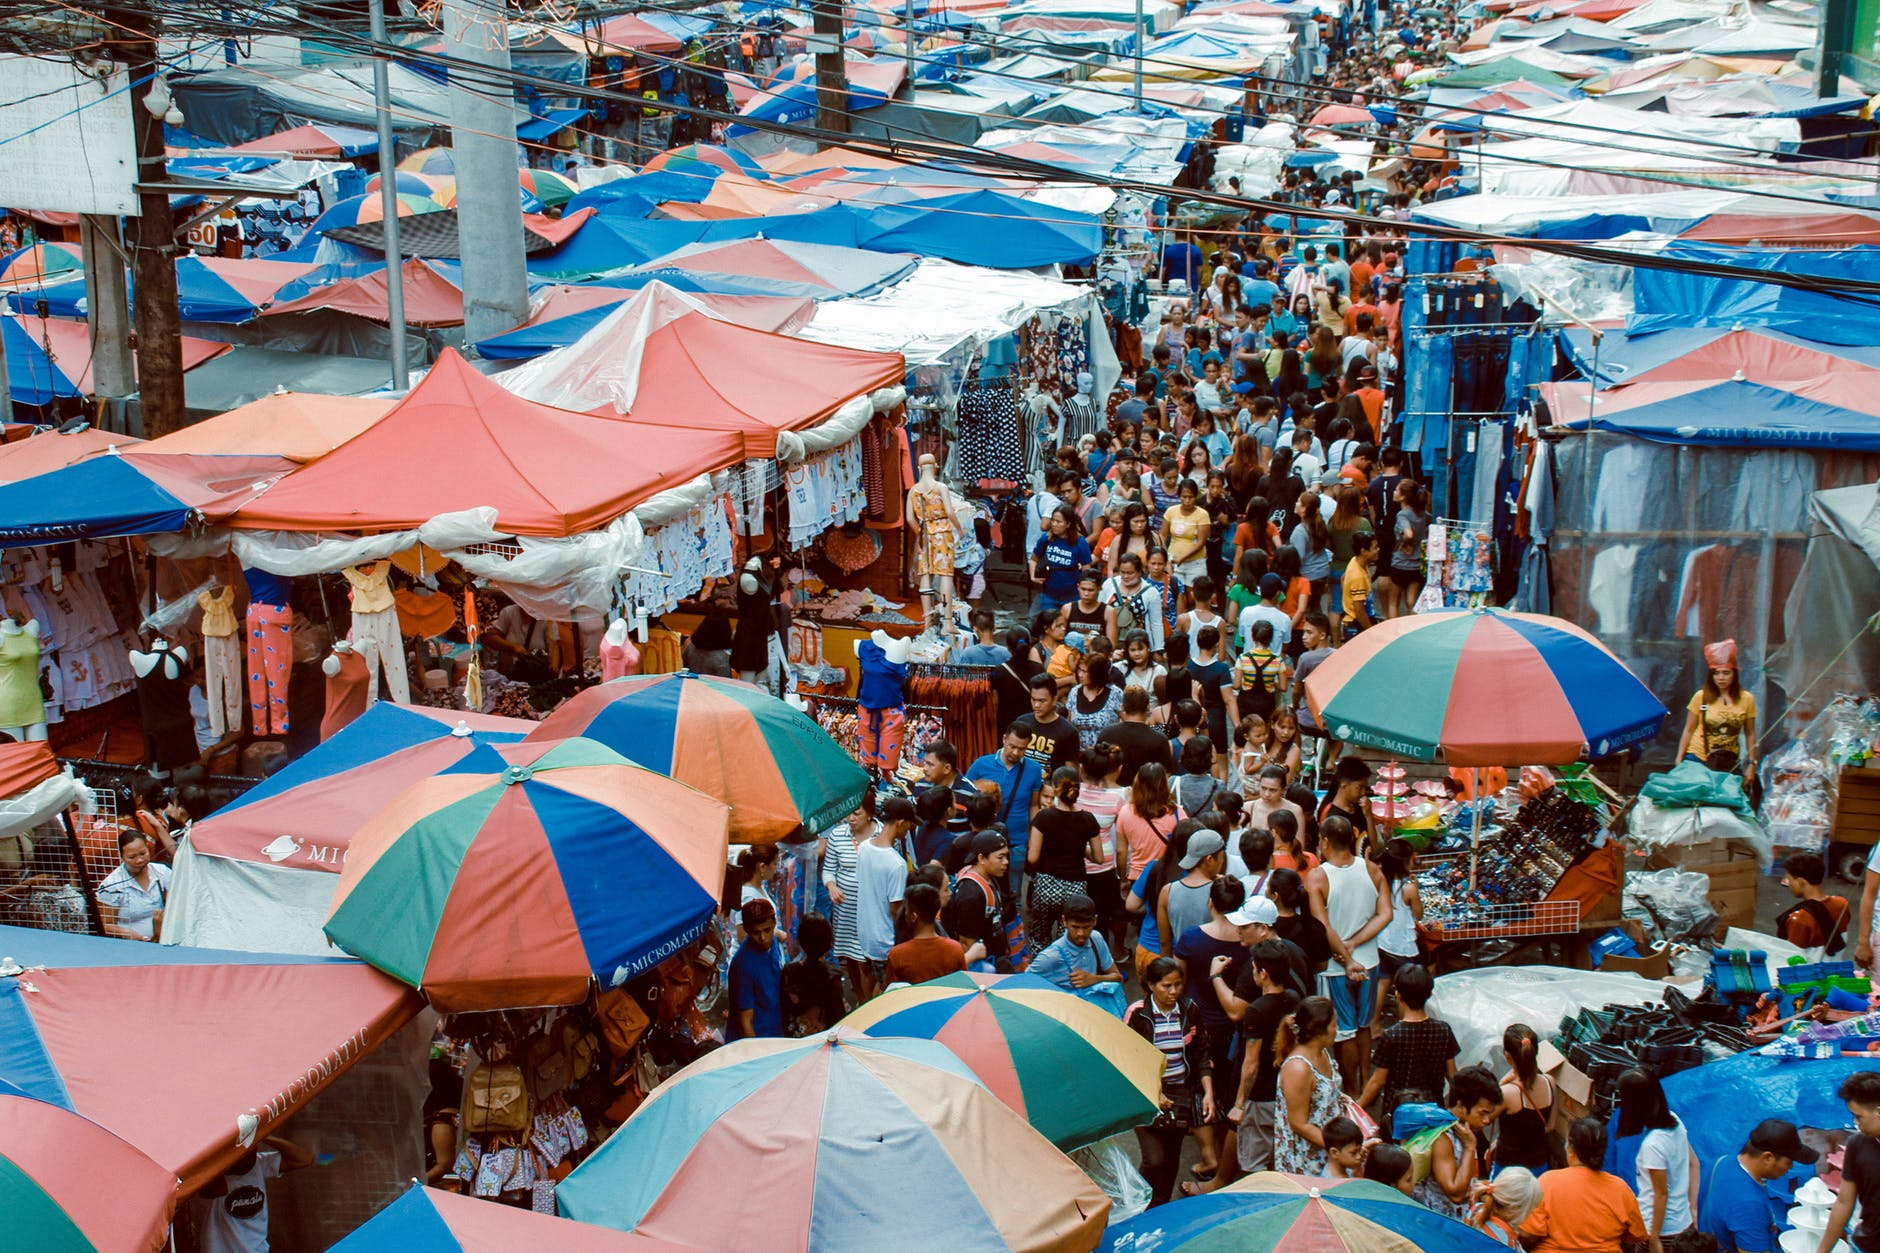 photo of crowd of people in the market